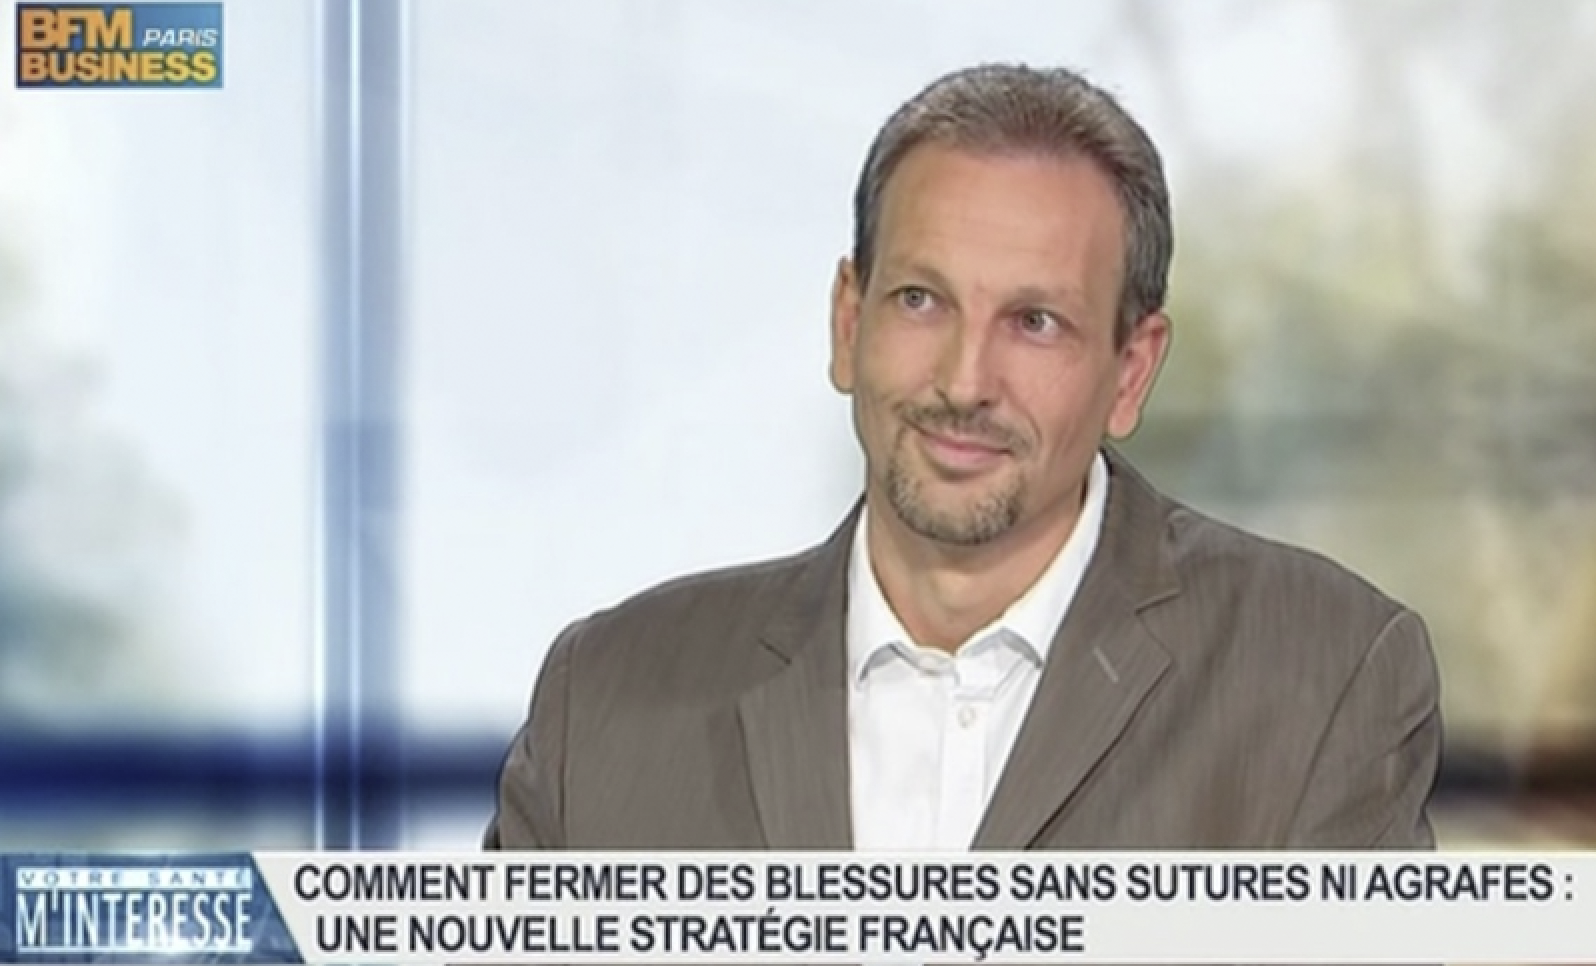 D Letourneur on BFM TV